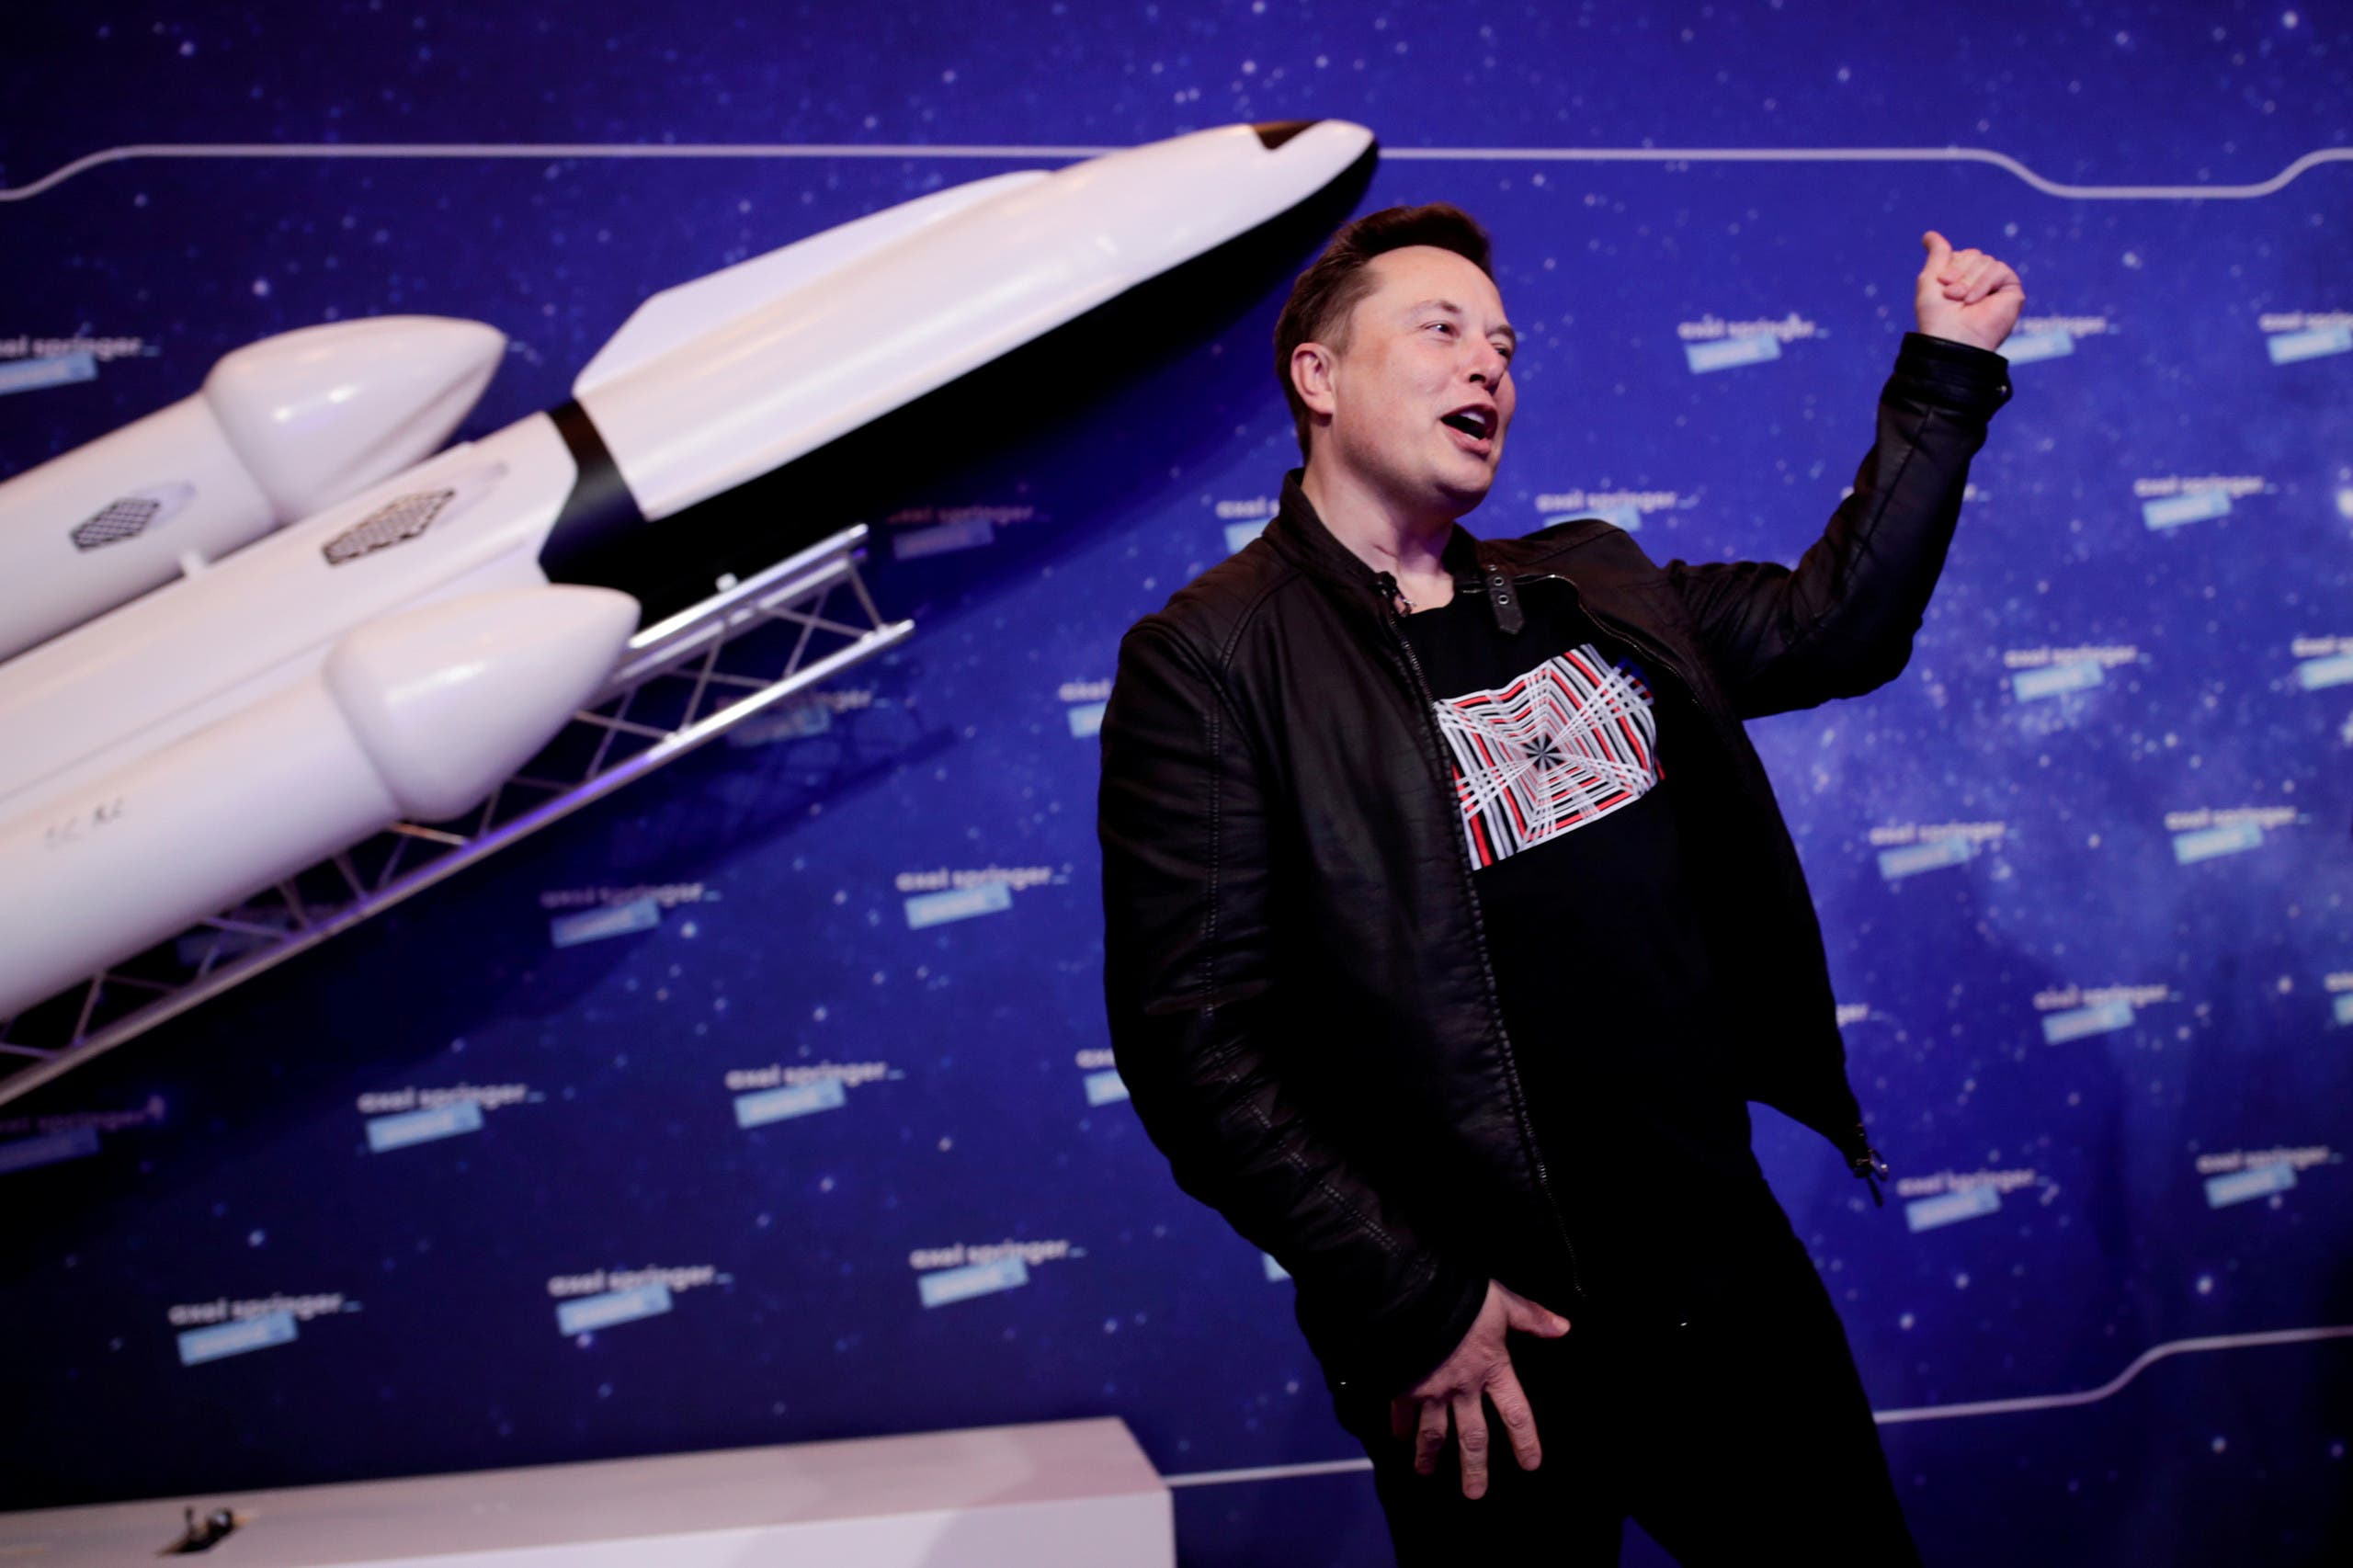 SpaceX owner and Tesla CEO Elon Musk gestures after arriving on the red carpet for the Axel Springer award, in Berlin, Germany, December 1, 2020. (Reuters)